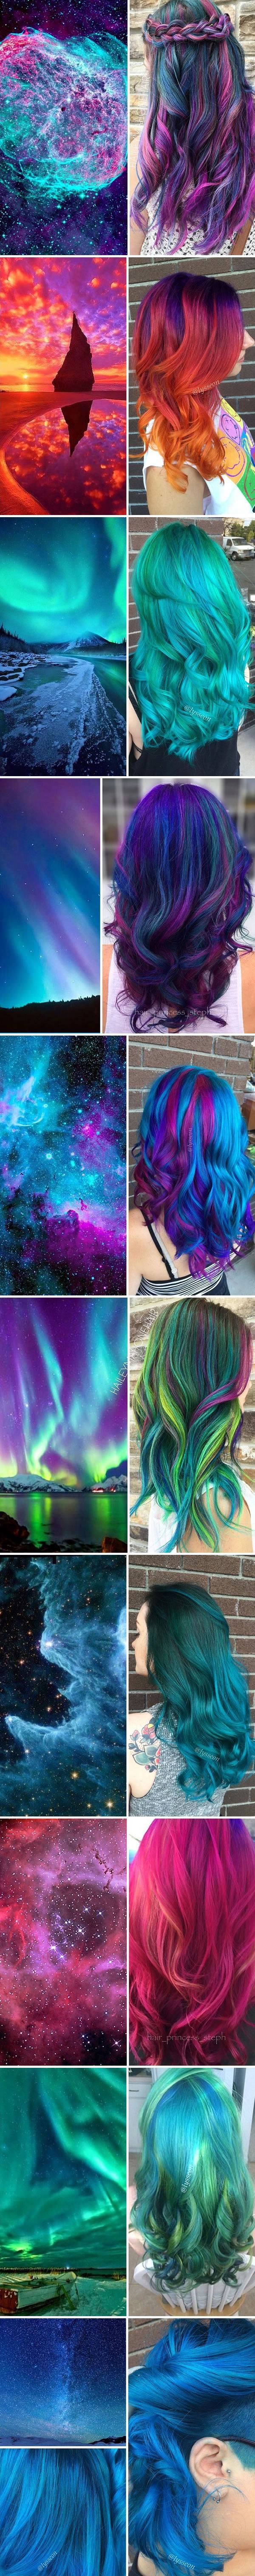 """This """"Galaxy Hair"""" trend is actually quite mesmerizing - 9GAG"""